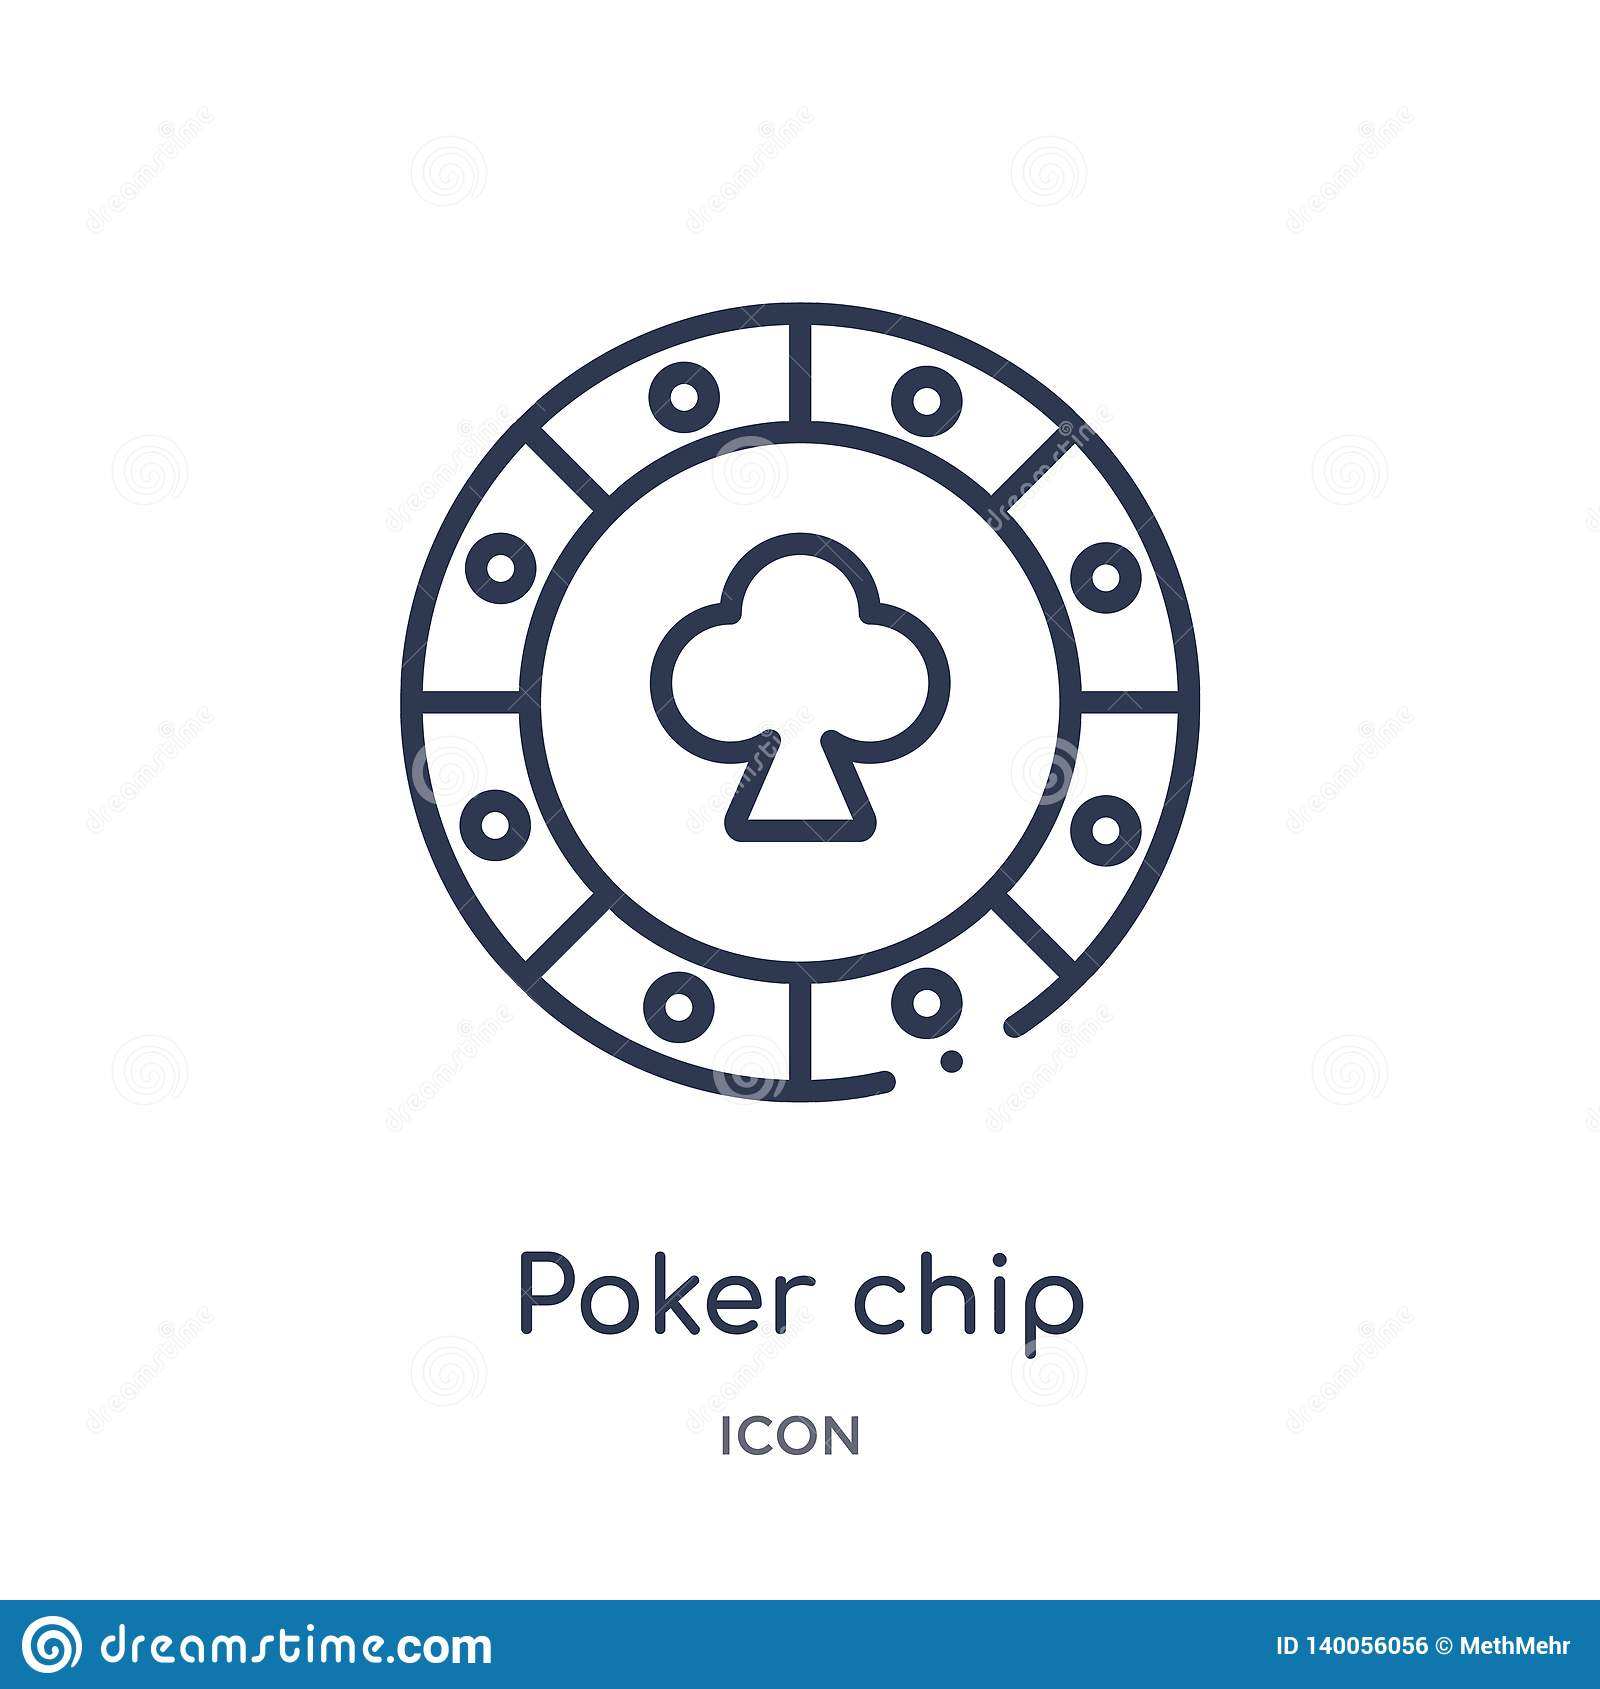 Linear poker chip icon from Entertainment and arcade outline collection. Thin line poker chip vector isolated on white background